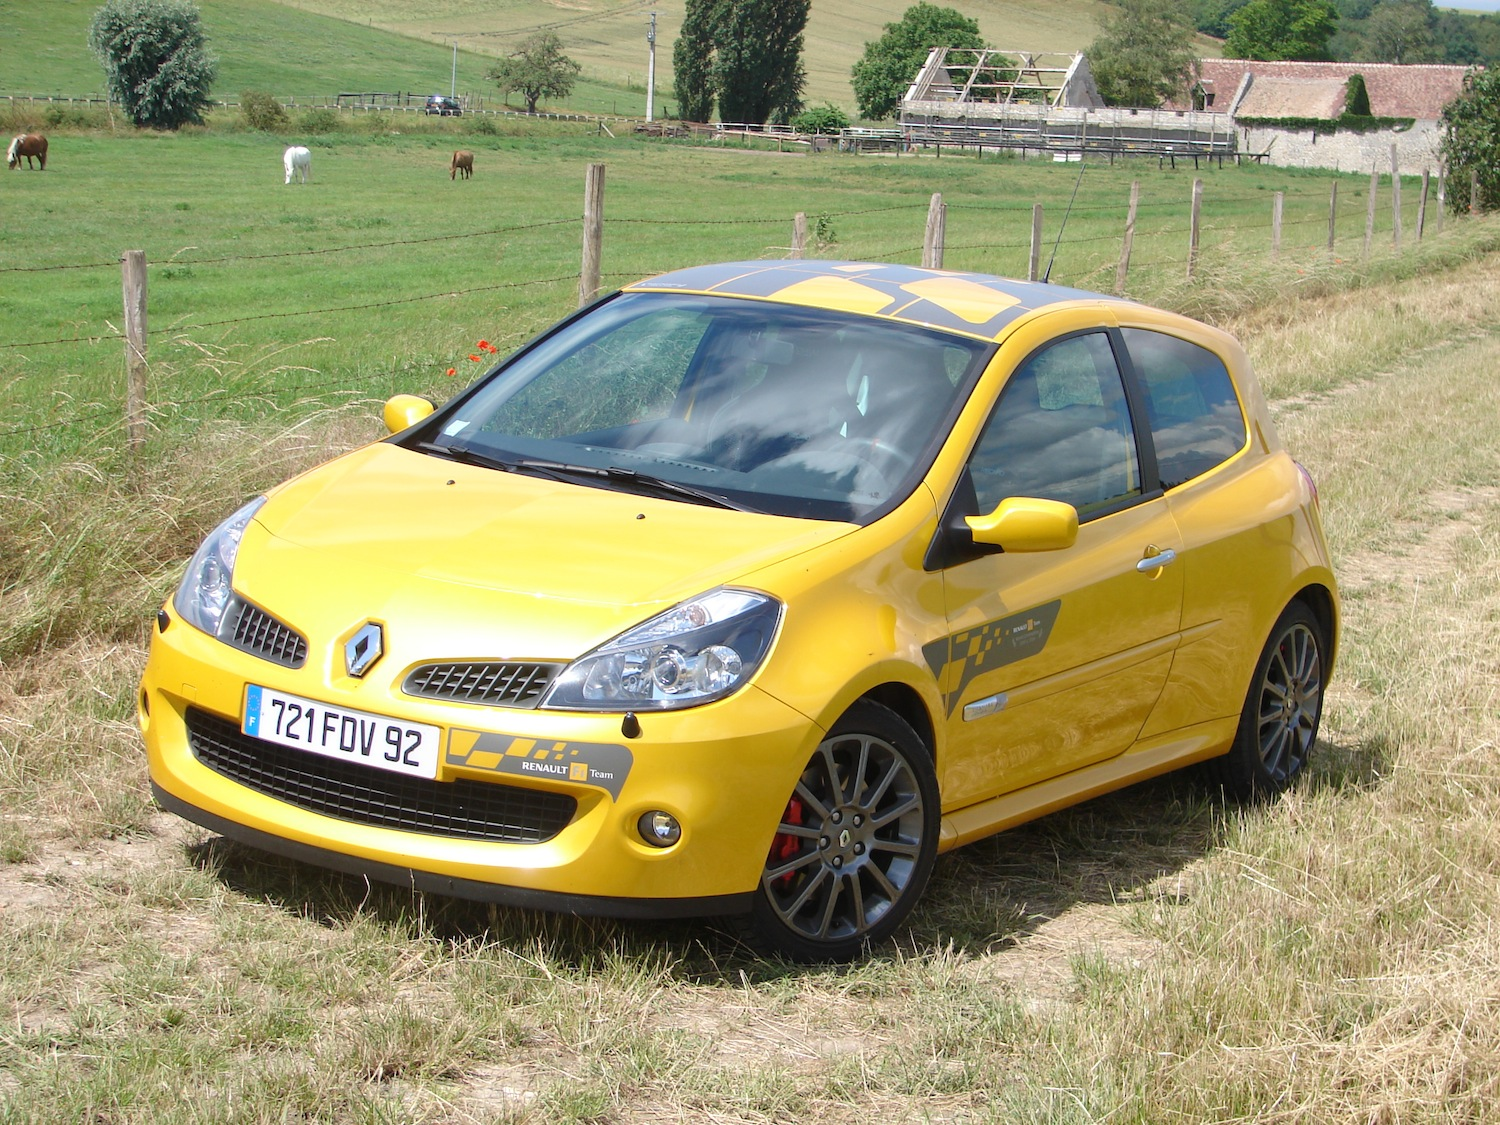 echappement renault sport clio 3 rs. Black Bedroom Furniture Sets. Home Design Ideas